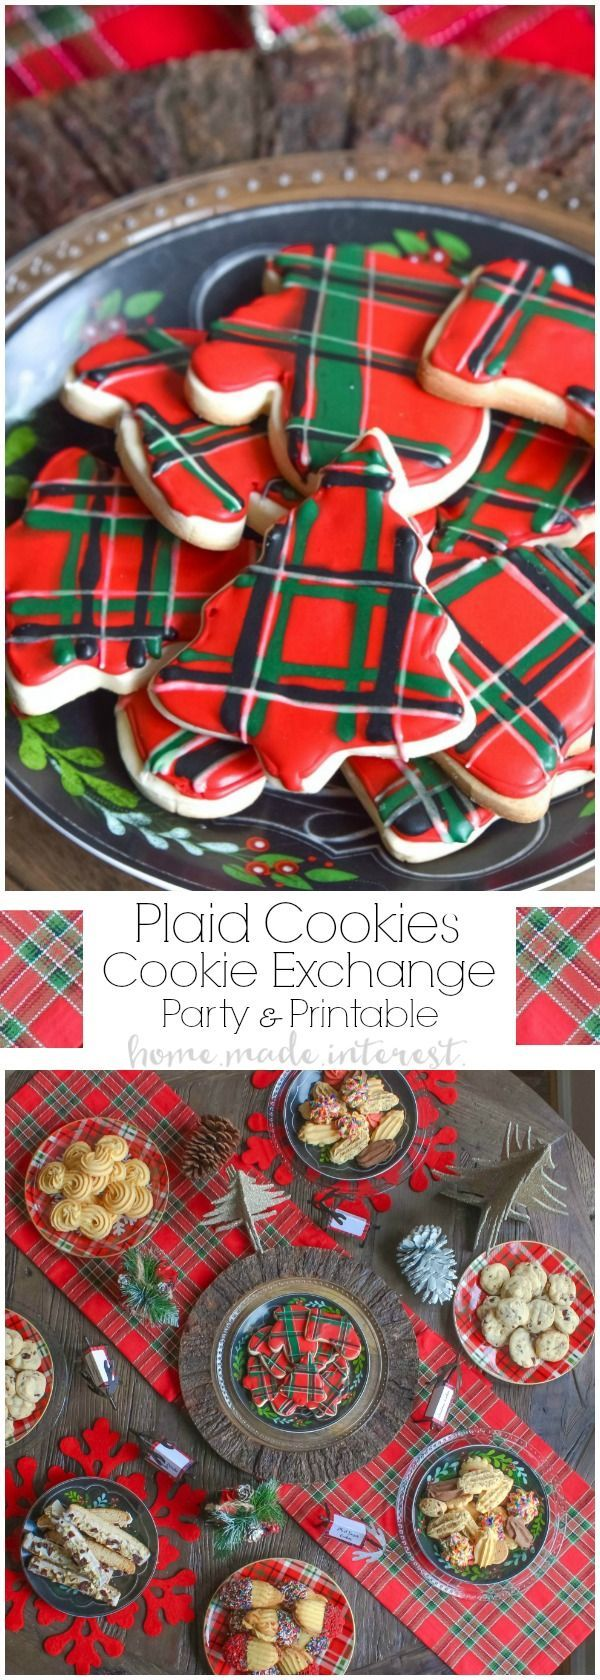 We are Mad for plaid this year and we turned that into a theme for our Christmas cookie exchange. Plaid table decorations, free cookie exchange recipe cards, and plaid sugar cookies. Check out how to host a cookie exchange and download our free printable recipe cards for your next party. #SharetheHoliday | AD